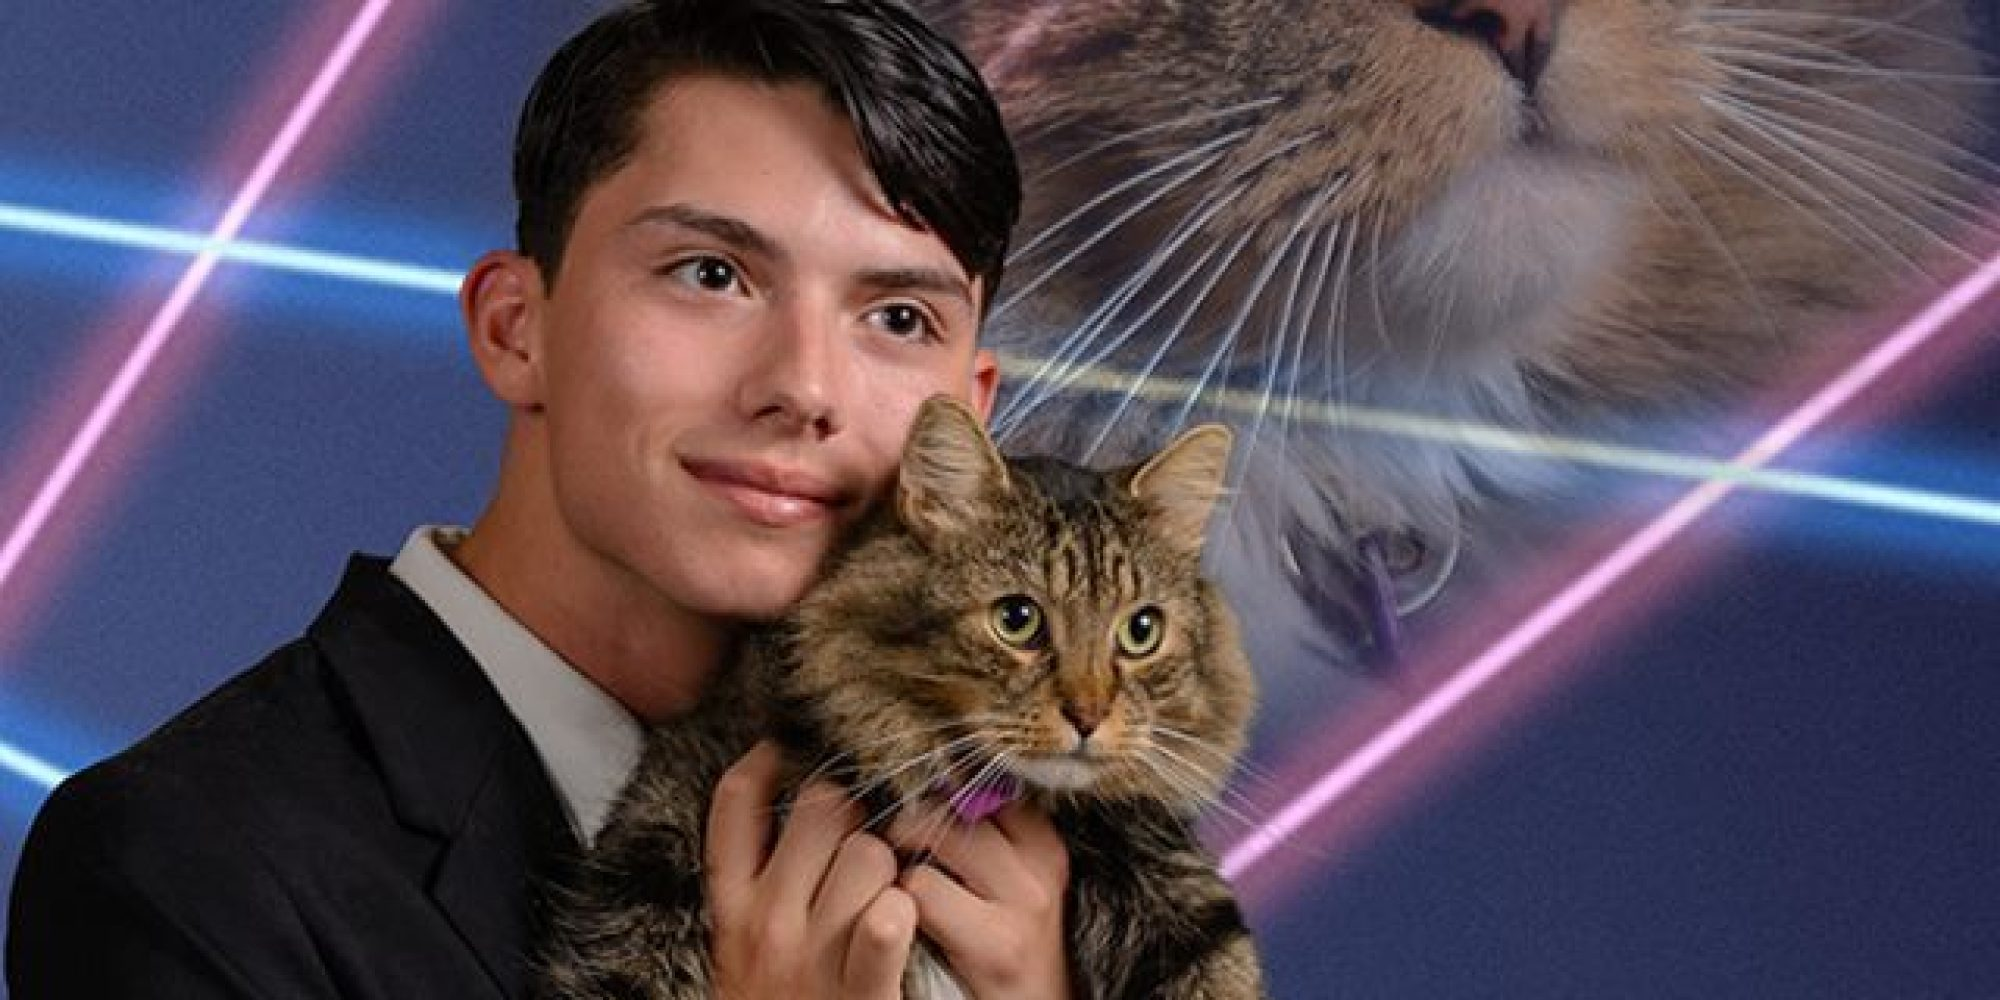 Senior Picture With Cat And Lasers